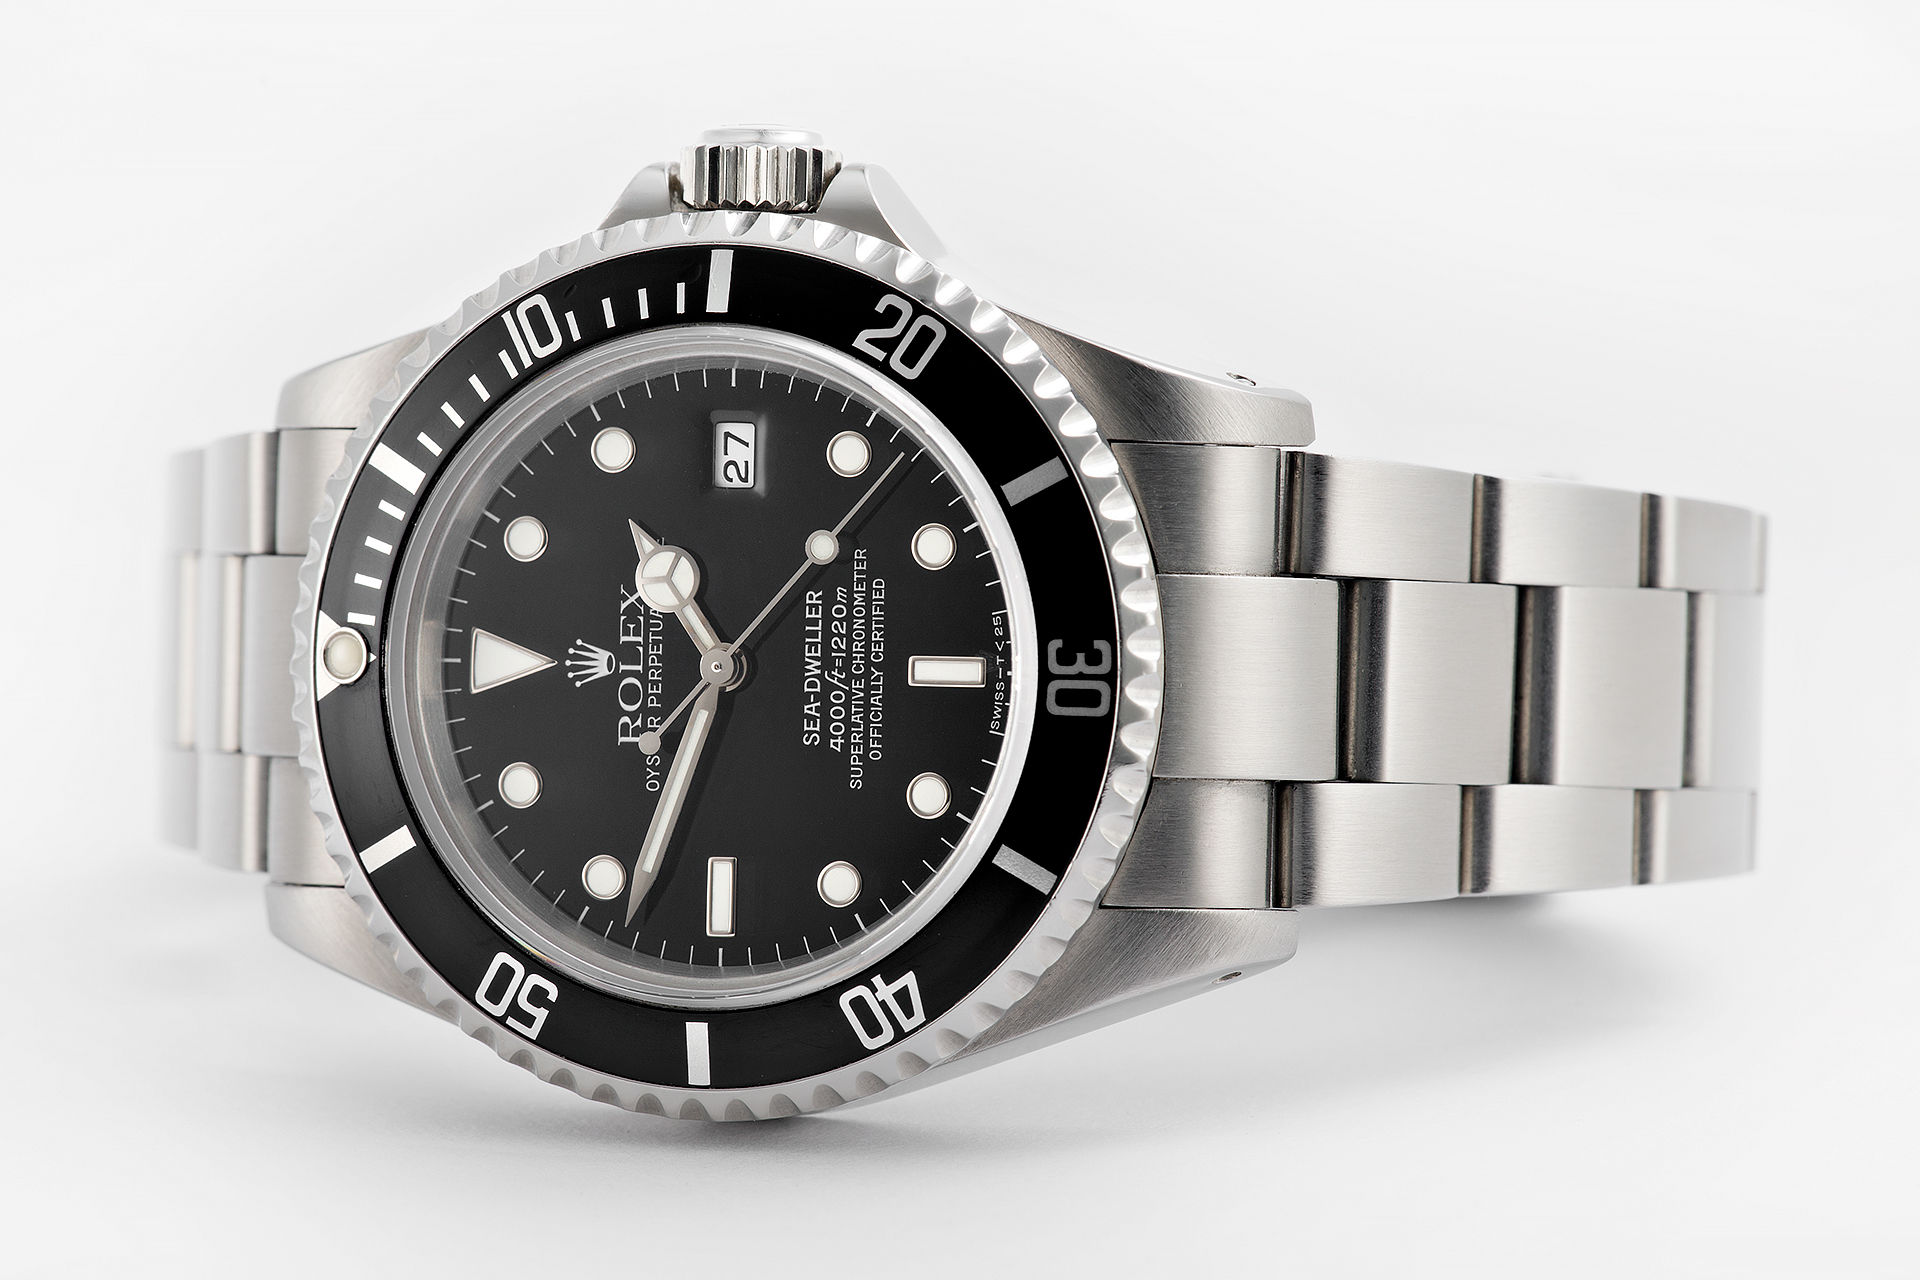 ref 16600 | 'Full Collector's Set' | Rolex Sea-Dweller